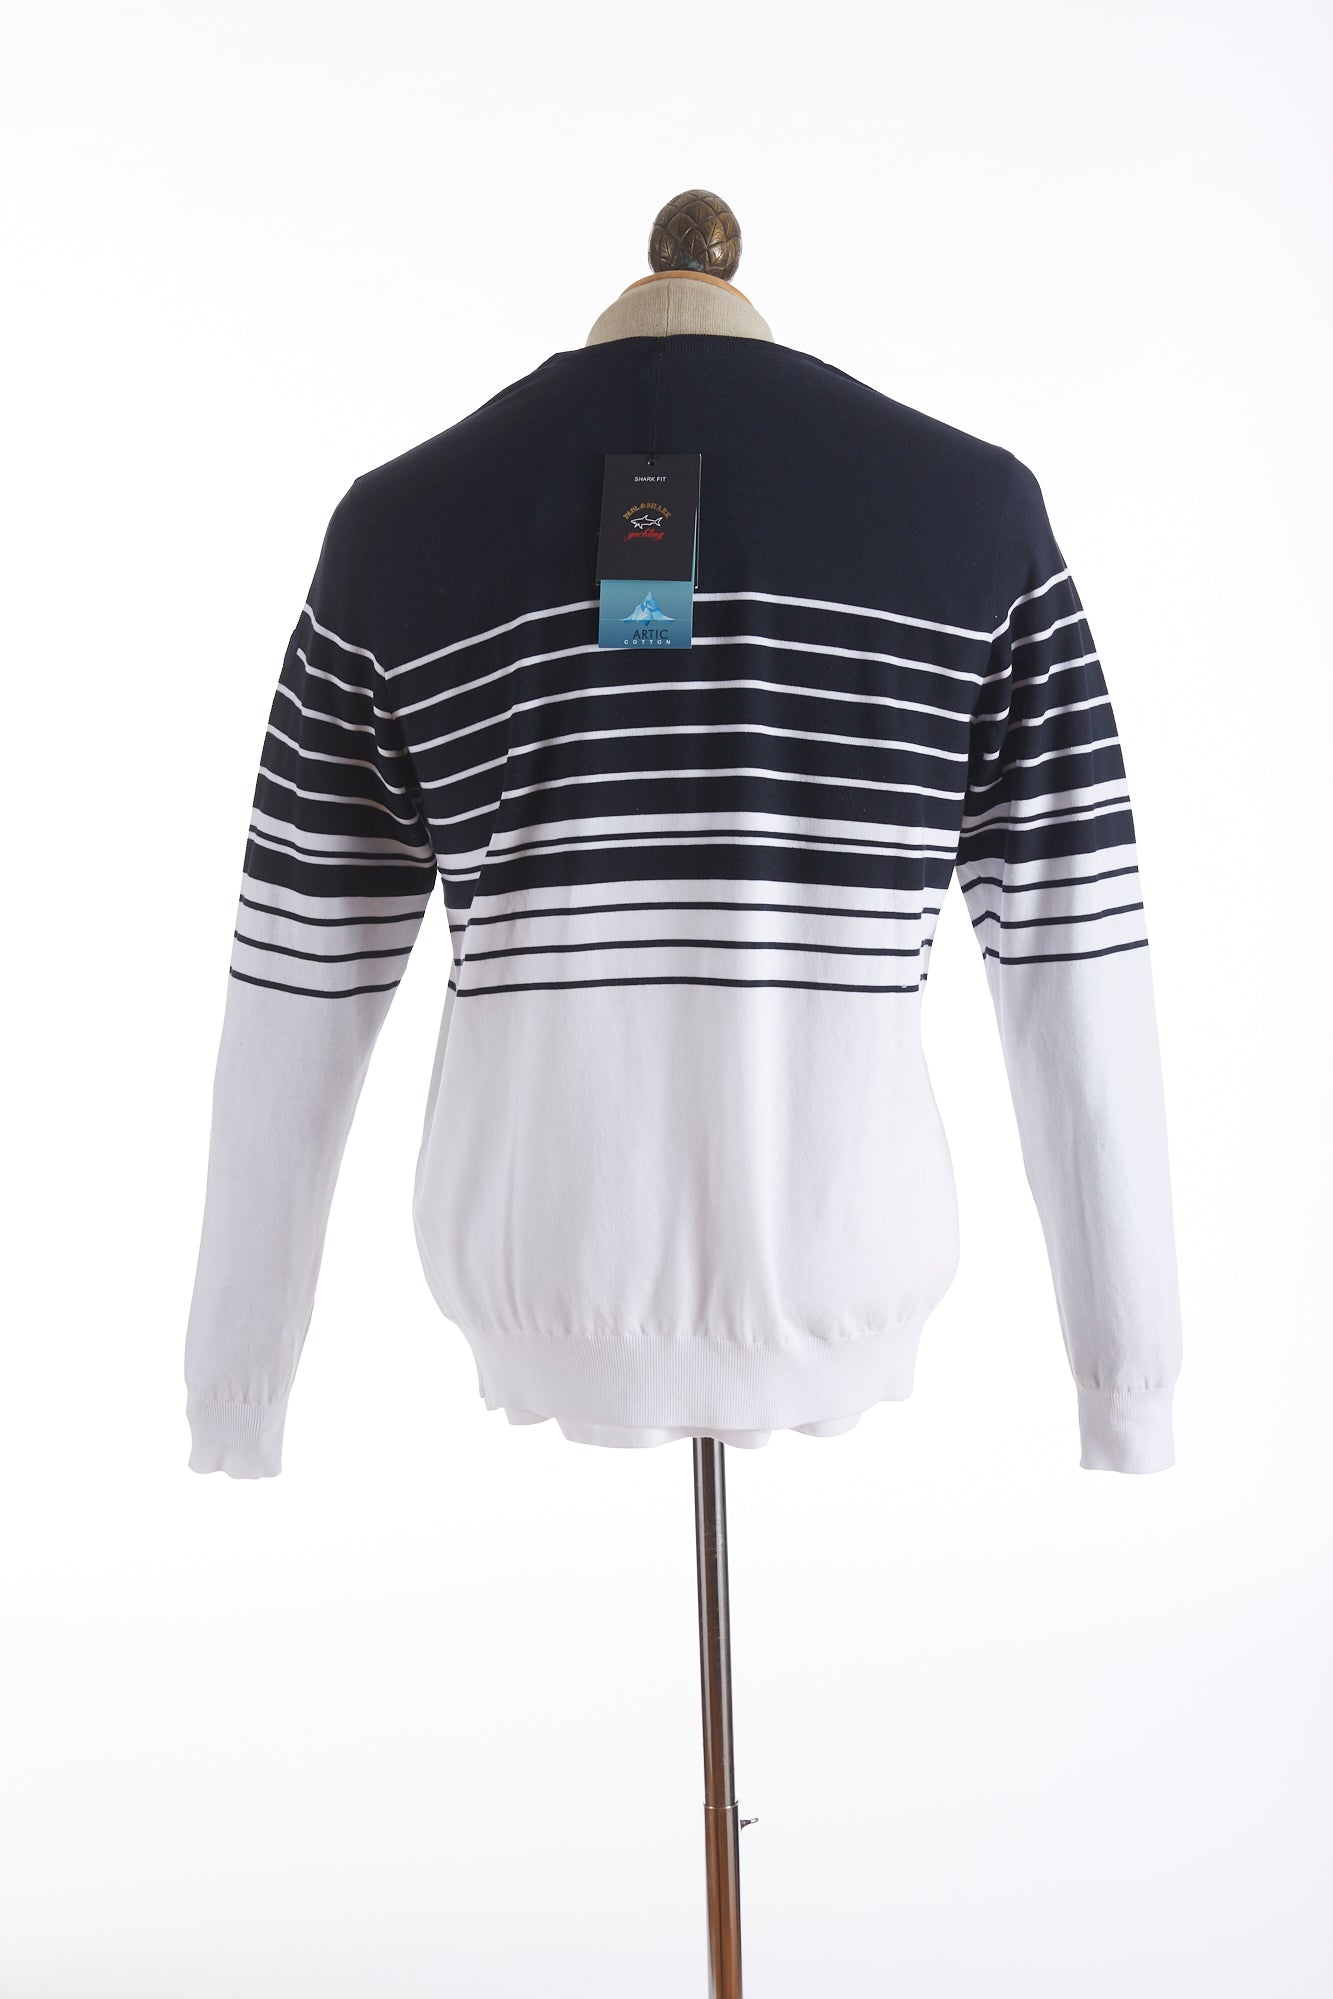 Paul and Shark Striped Navy White Crewneck Sweater Back